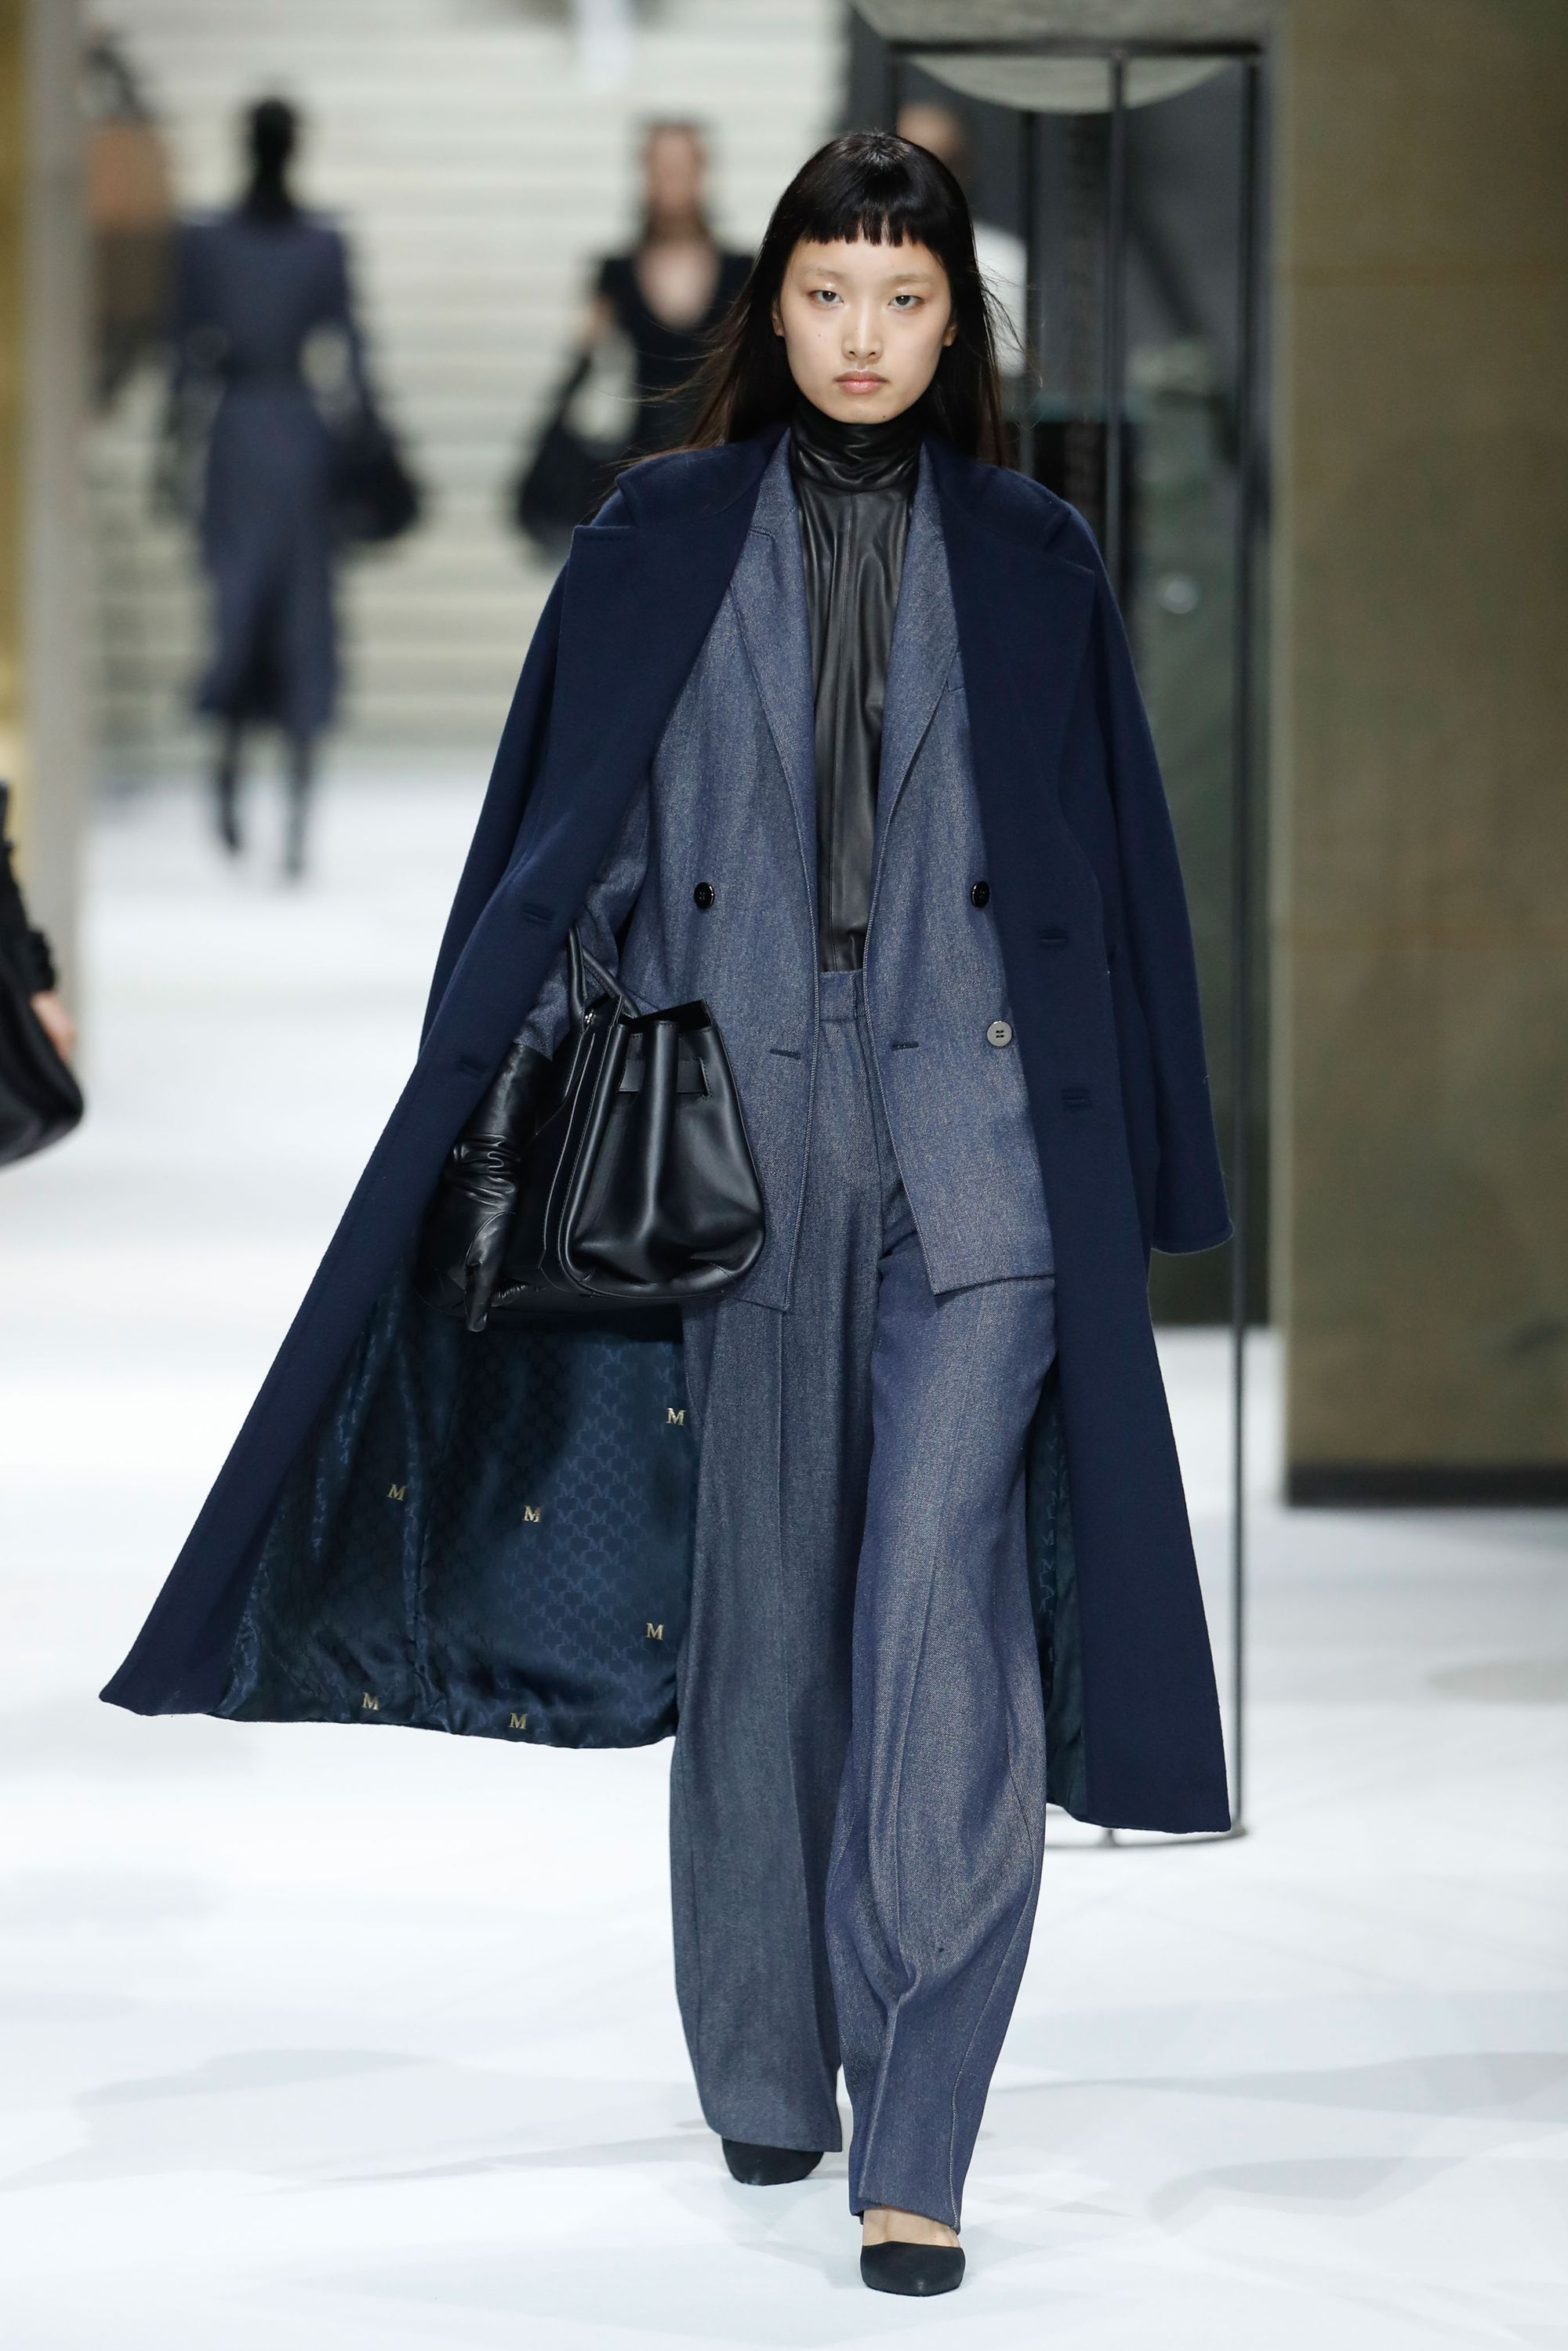 Image result for AW17 catwalk Max Mara